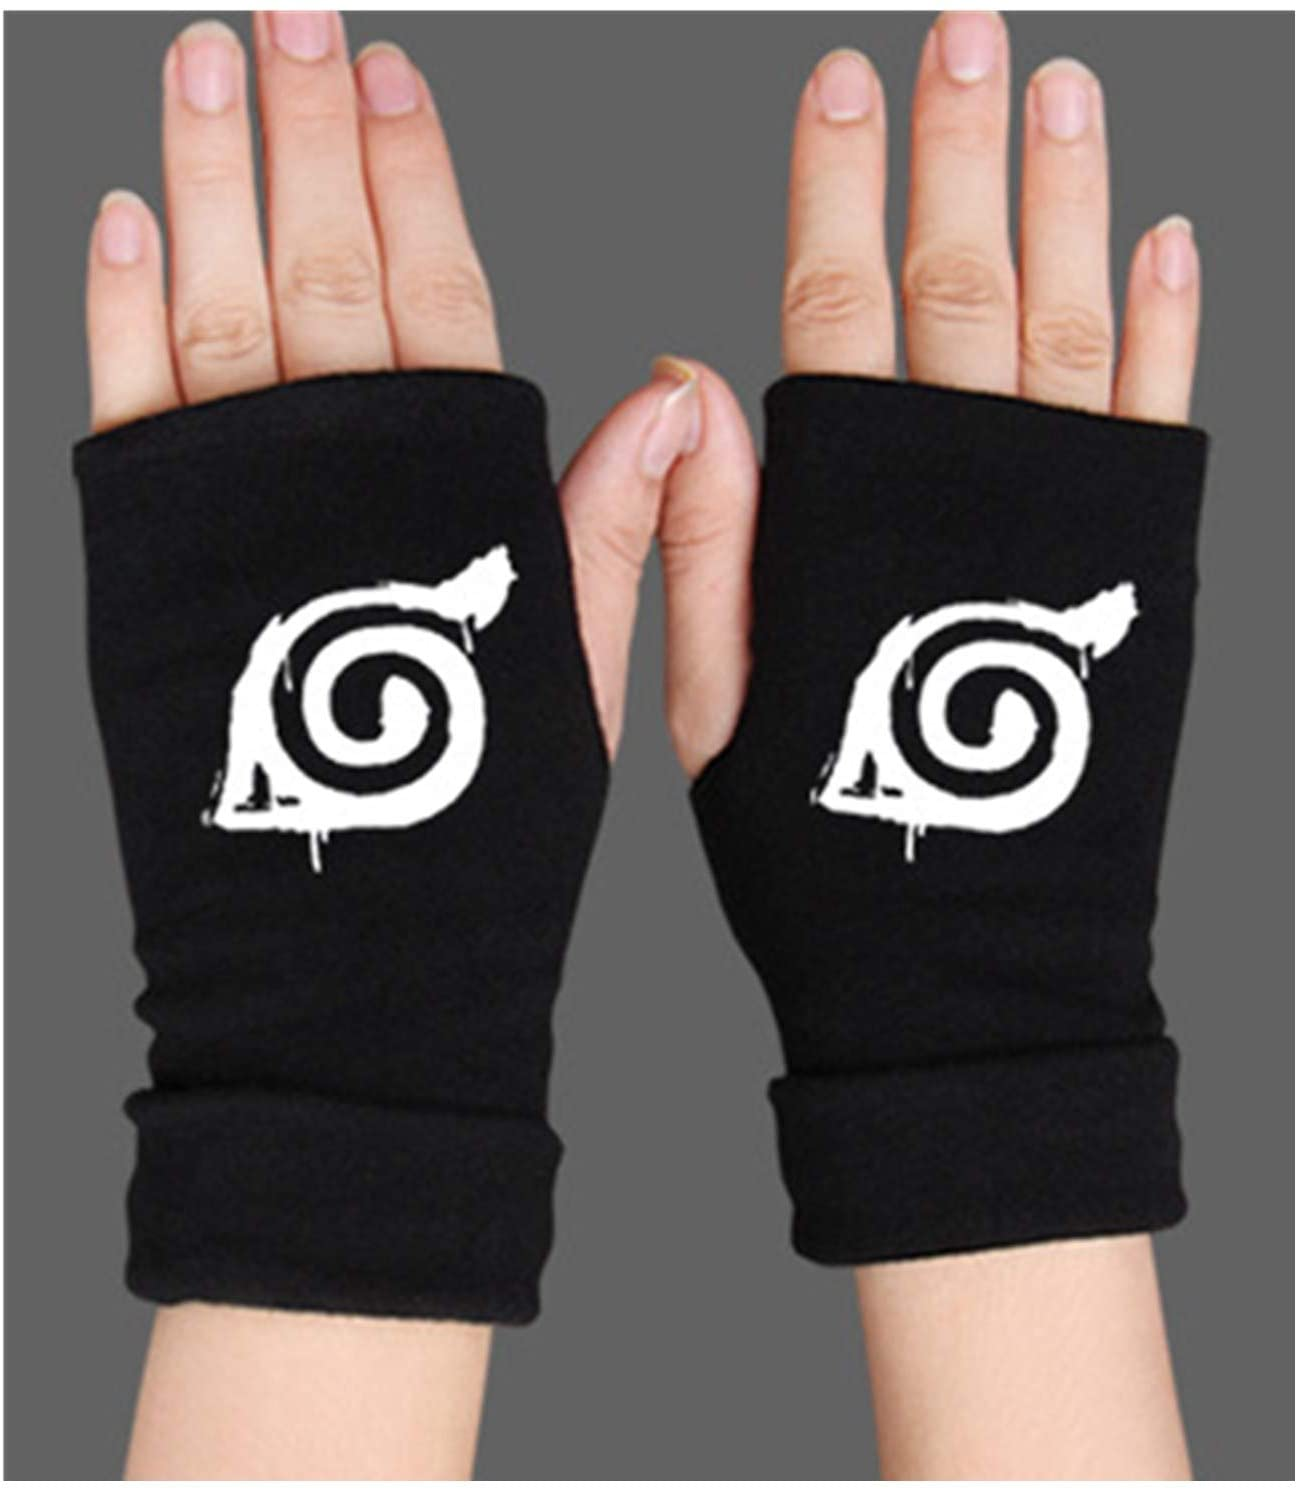 MUEKA Naruto Costume Fingerless Gloves Kakashi Cosplay Costume Ninja Gloves Naruto Costume Black Leather Gloves for Girl boy (Blcak)